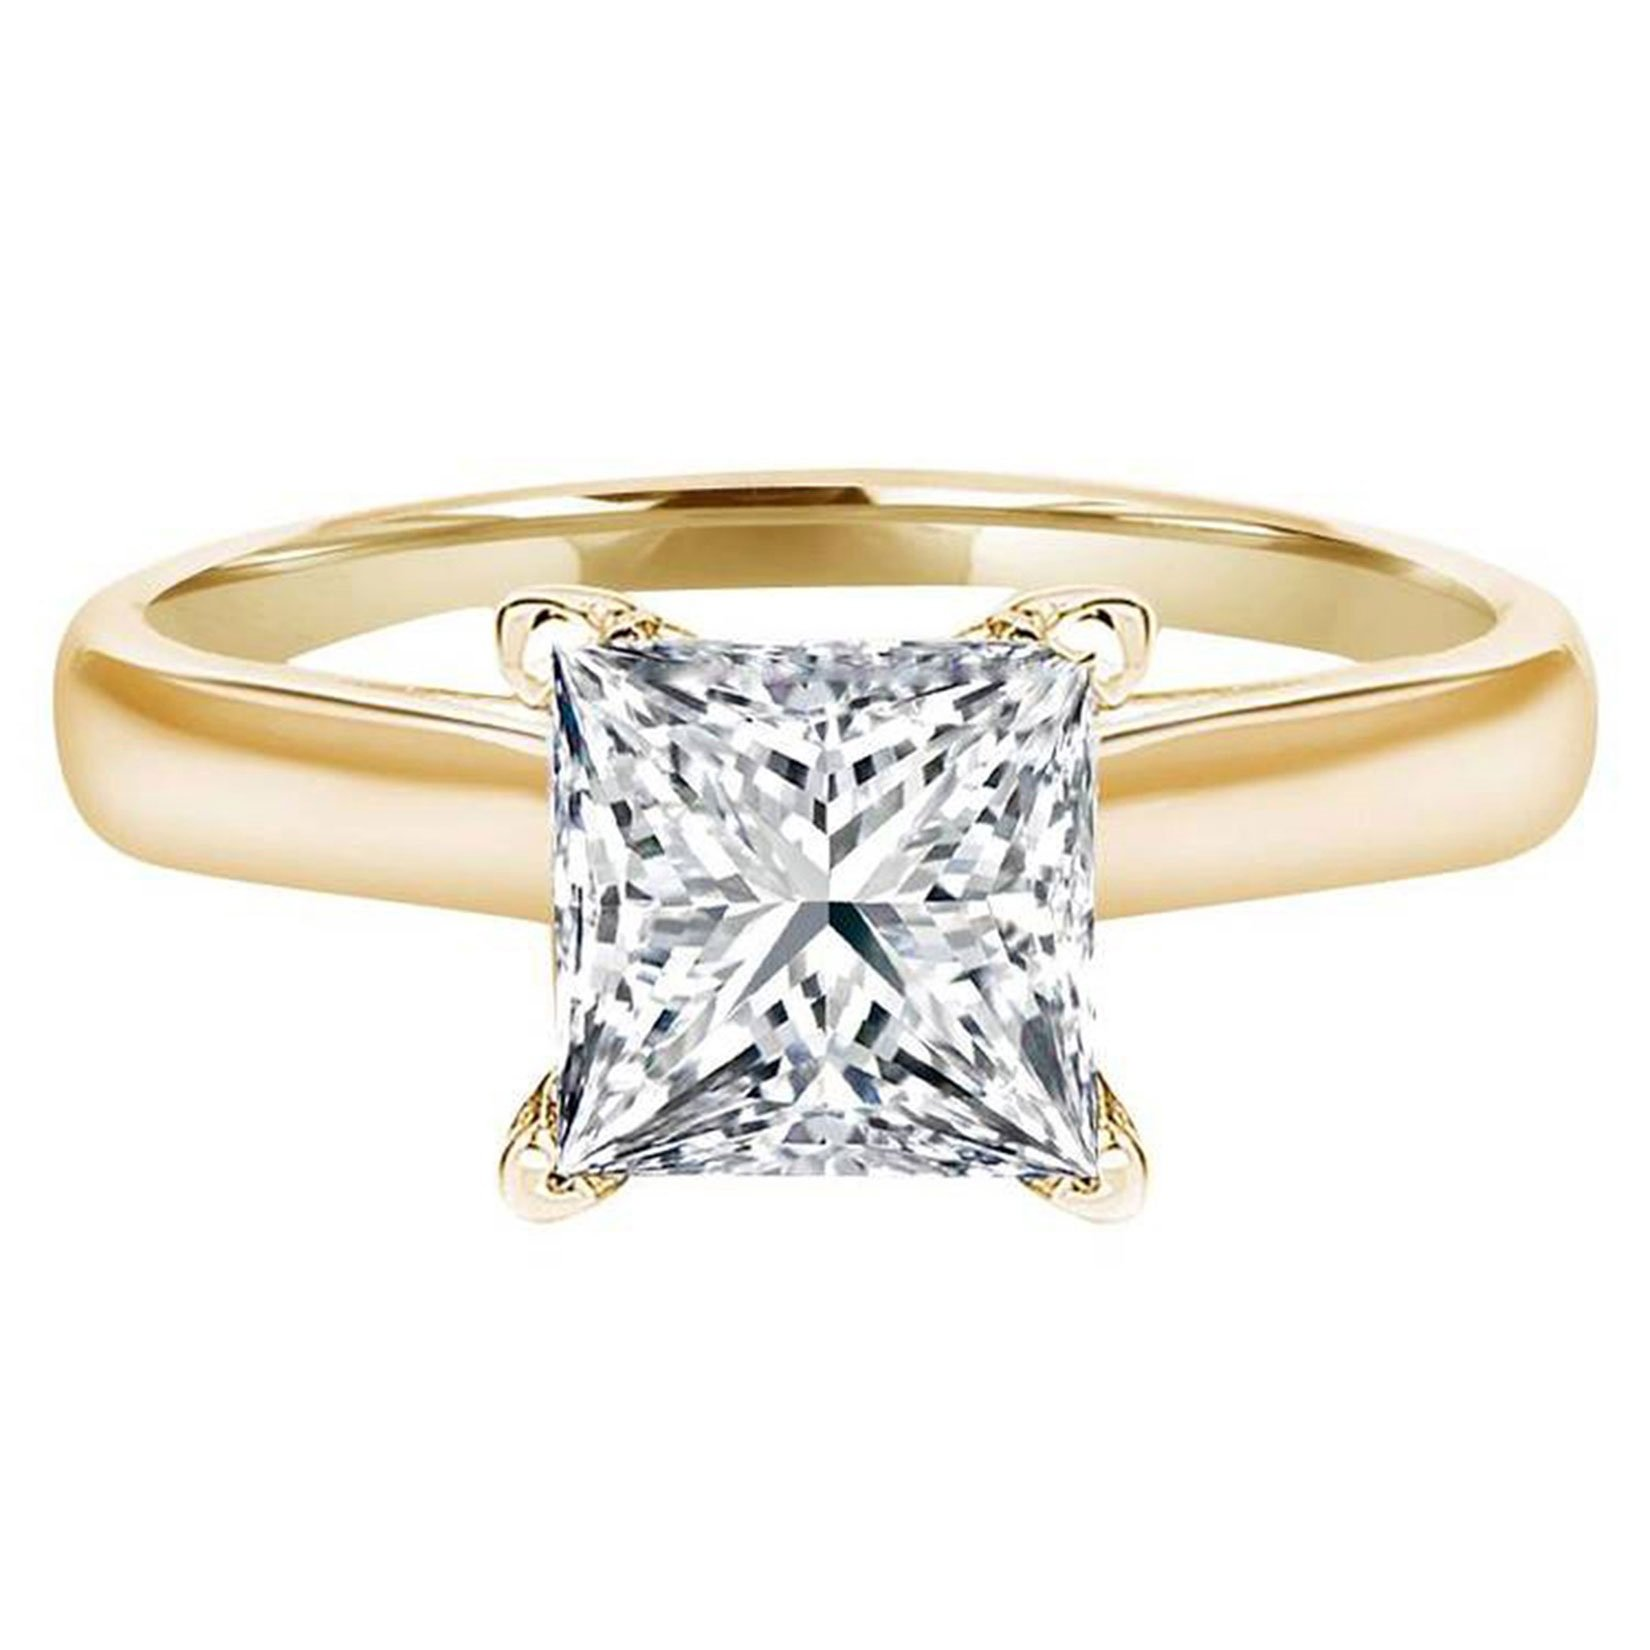 Clara Pucci 3.0 CT Princess Brilliant Cut Simulated Diamond CZ Solitaire Engagement Wedding Ring 14k Yellow Gold, Size 6.5 by Clara Pucci